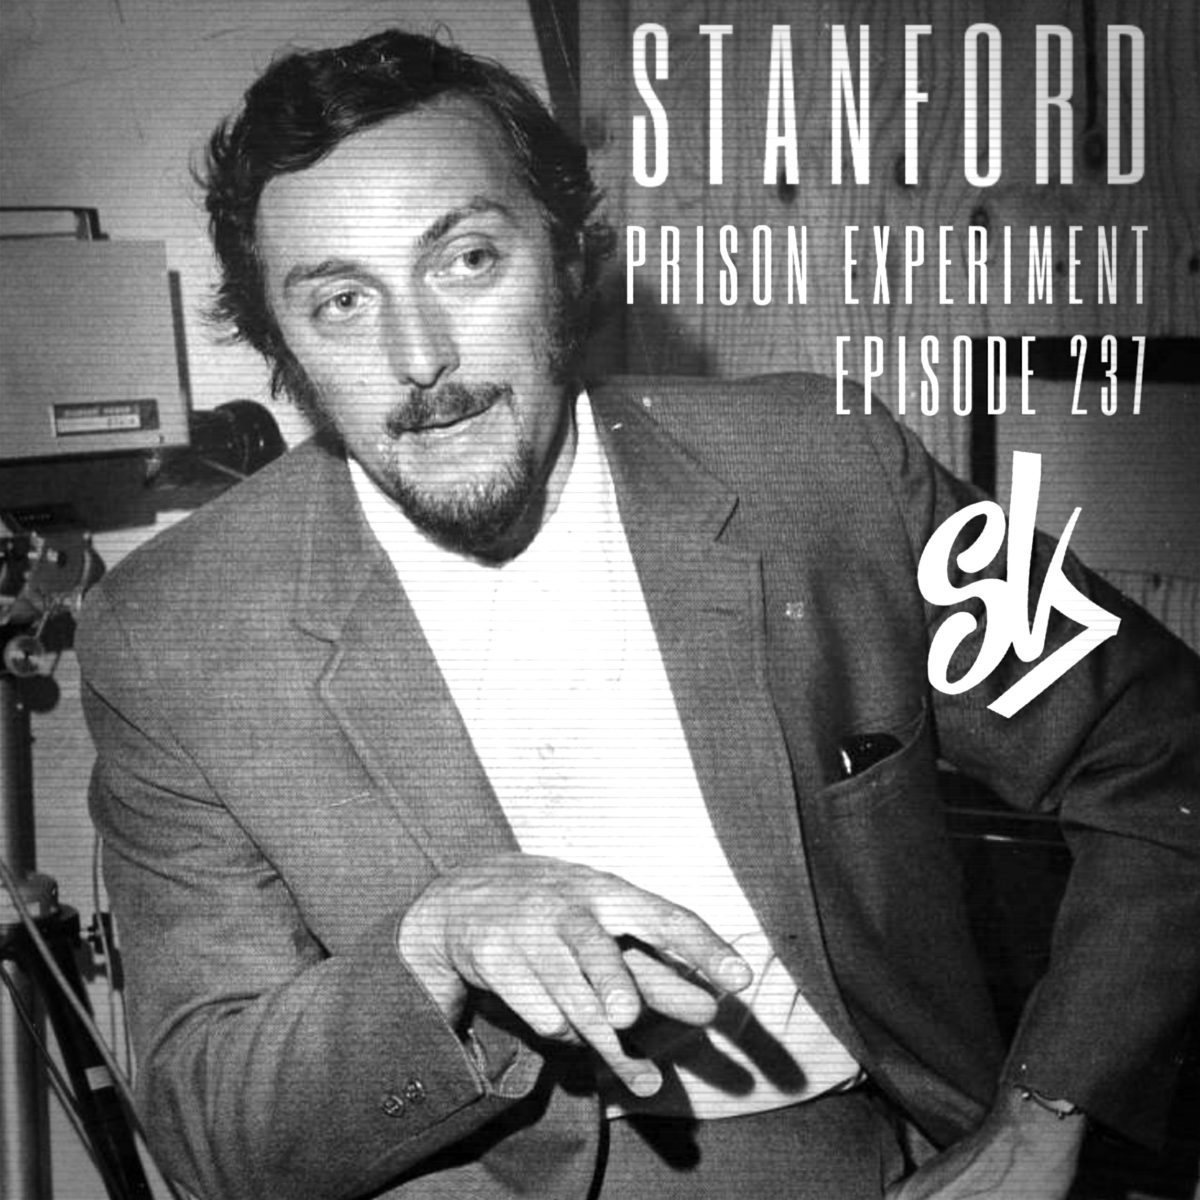 sofa king podcast best fabric to upholster a episode 237 stanford prison experiment the ultimate